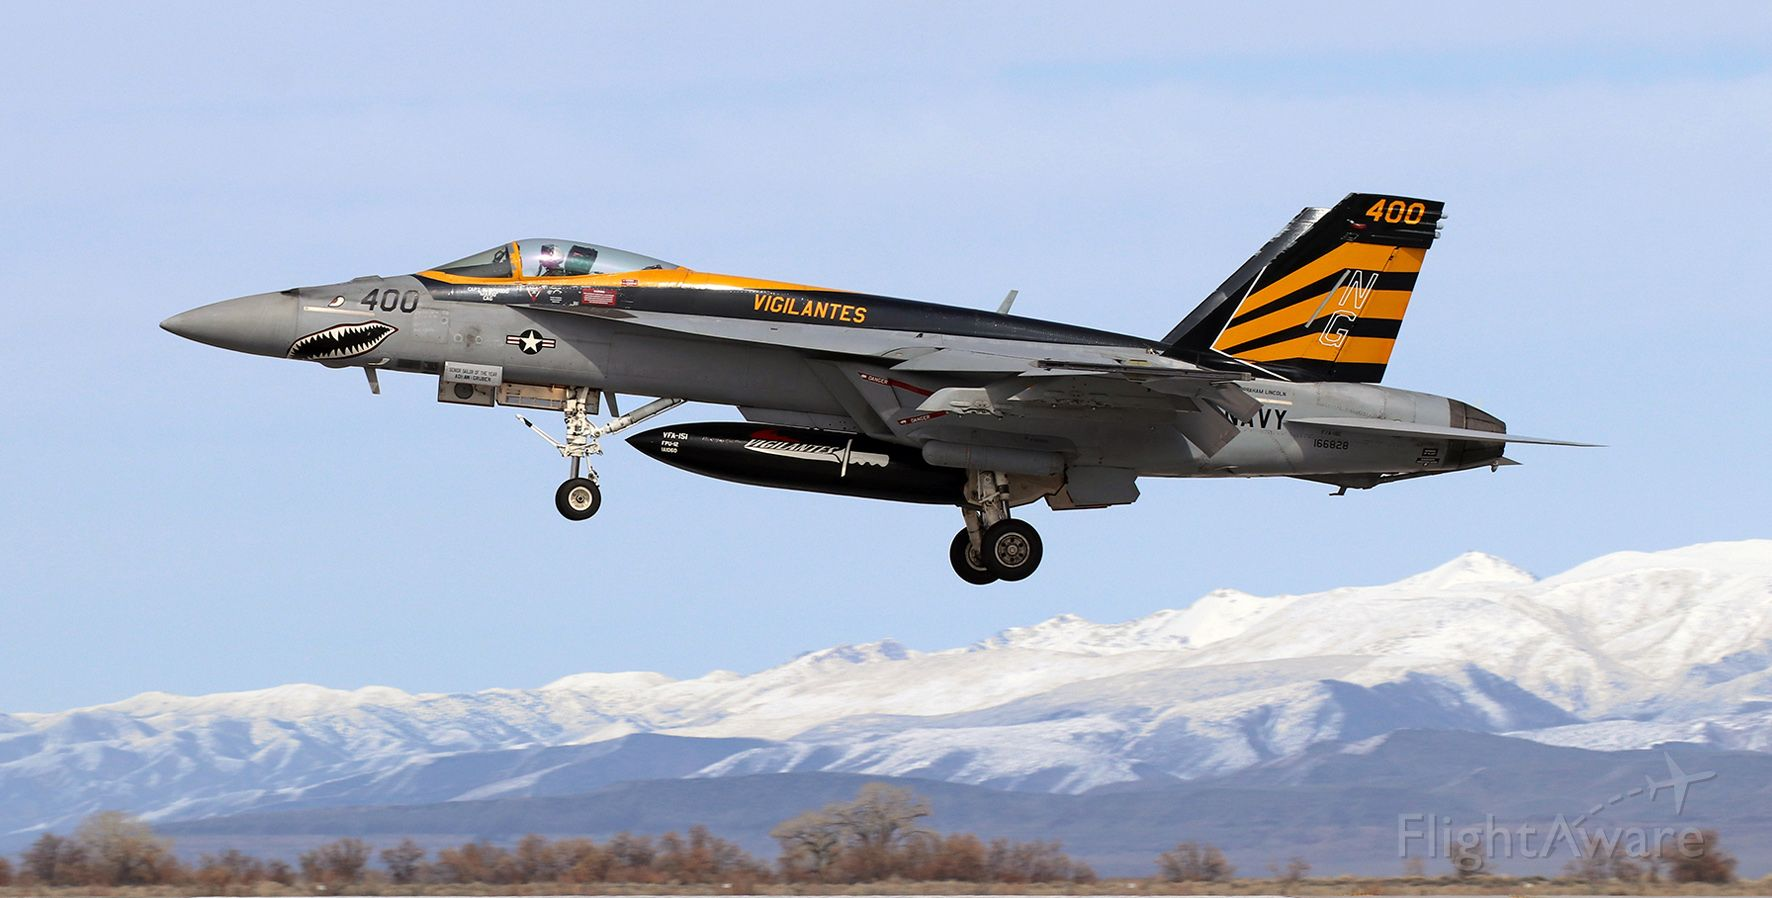 """McDonnell Douglas FA-18 Hornet (16-6828) - United States Navy McDonnell Douglas F/A-18E Super Hornet (166828)<br />VFA 151 (Strike Fighter Squadron One Five One) """"Vigilantes""""<br />Current Home Port: NAS Lemoore; Lemoore, CA<br />Assigned to the USS Abraham Lincoln (CVN 72 // Nimitz-class) .... Carrier Air Wing Nine (CVW 9) .... Pacific Fleet<br /><br />Returning from an afternoon air combat training sortie, """"Vigilantes"""" CAG Capt N.D. """"Mario"""" Good is about to land his VFA-151 CAGbird on Runway 31L."""